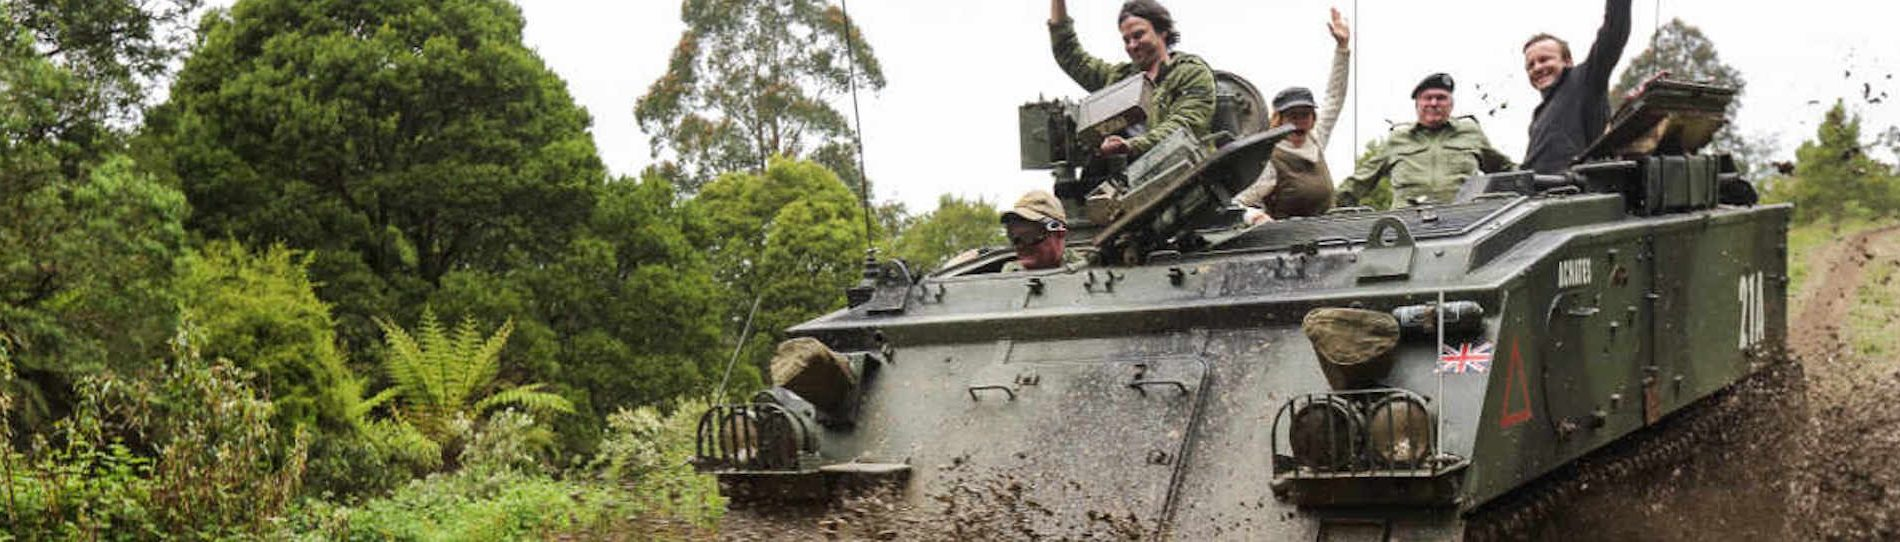 bucks riding in army tank as mud splashes